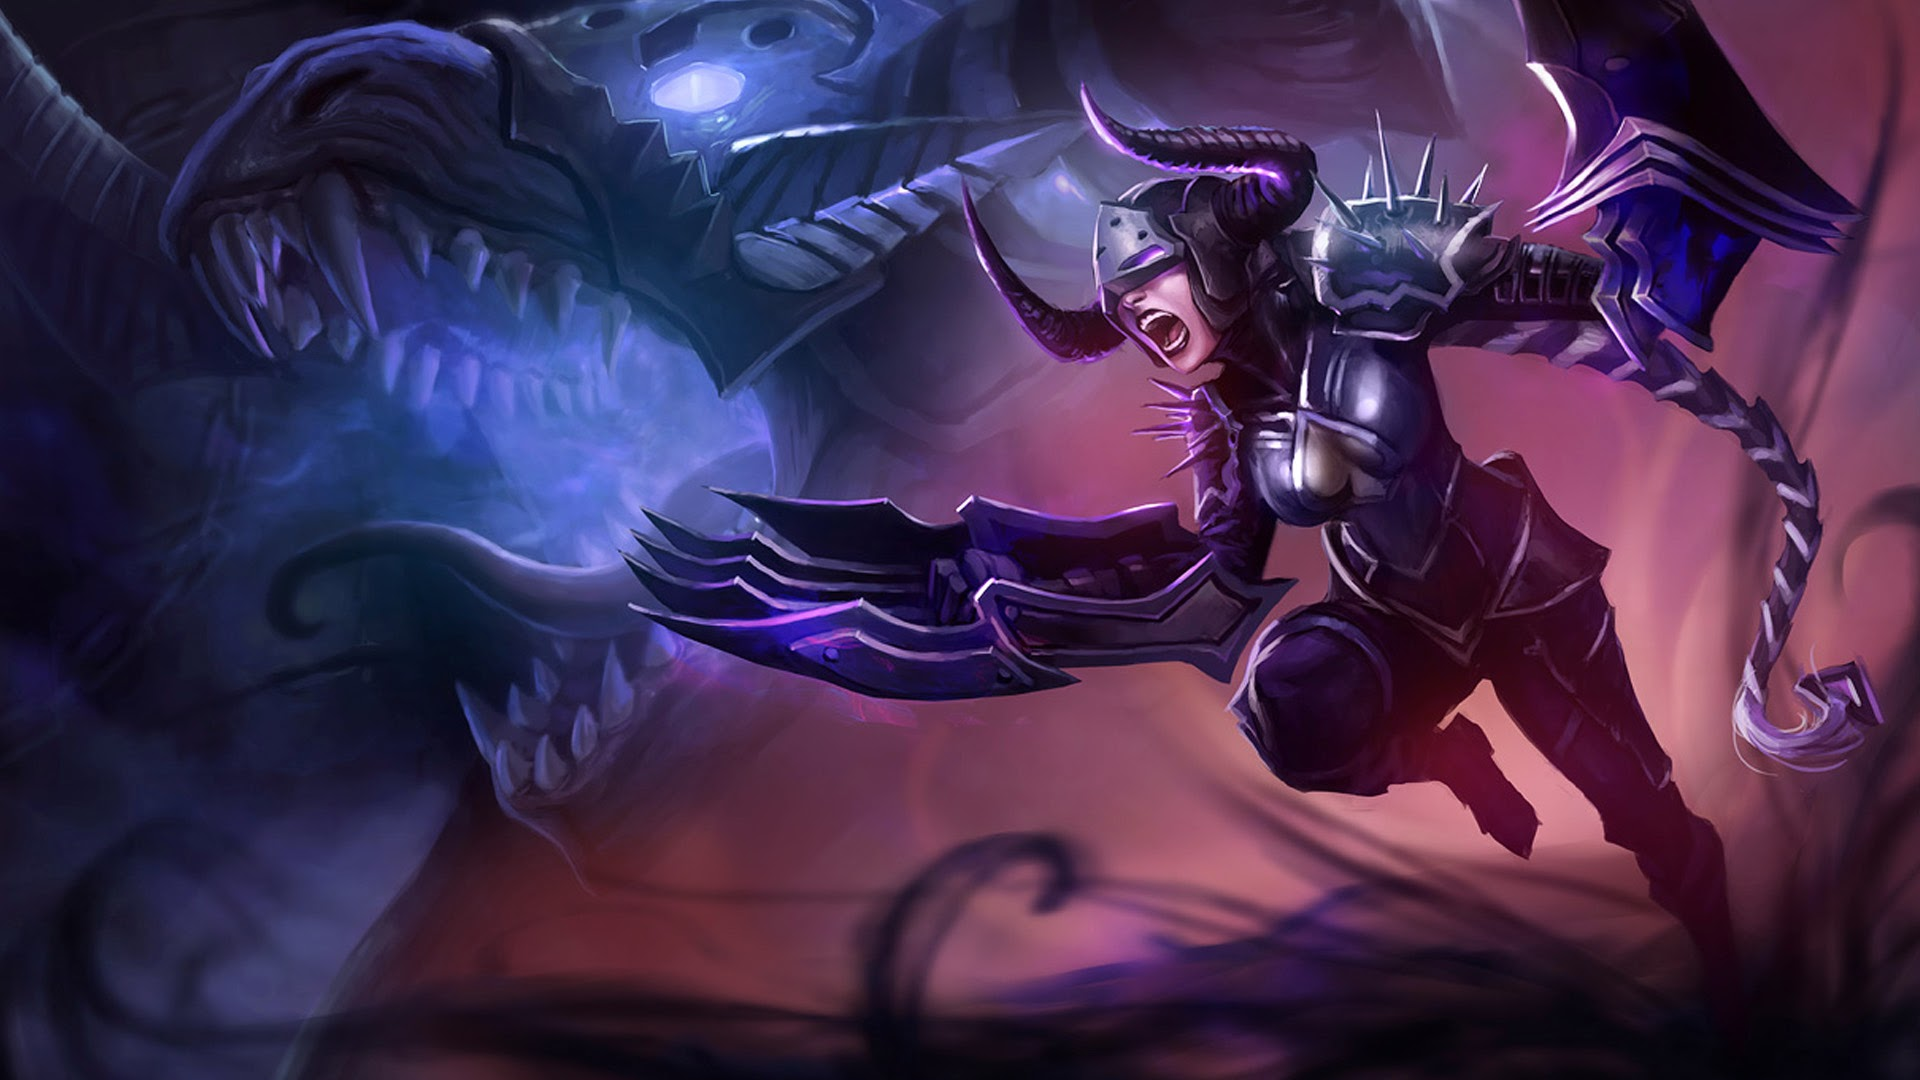 Shyvana LoL Splash Darkflame 3k Wallpaper HD 1920x1080